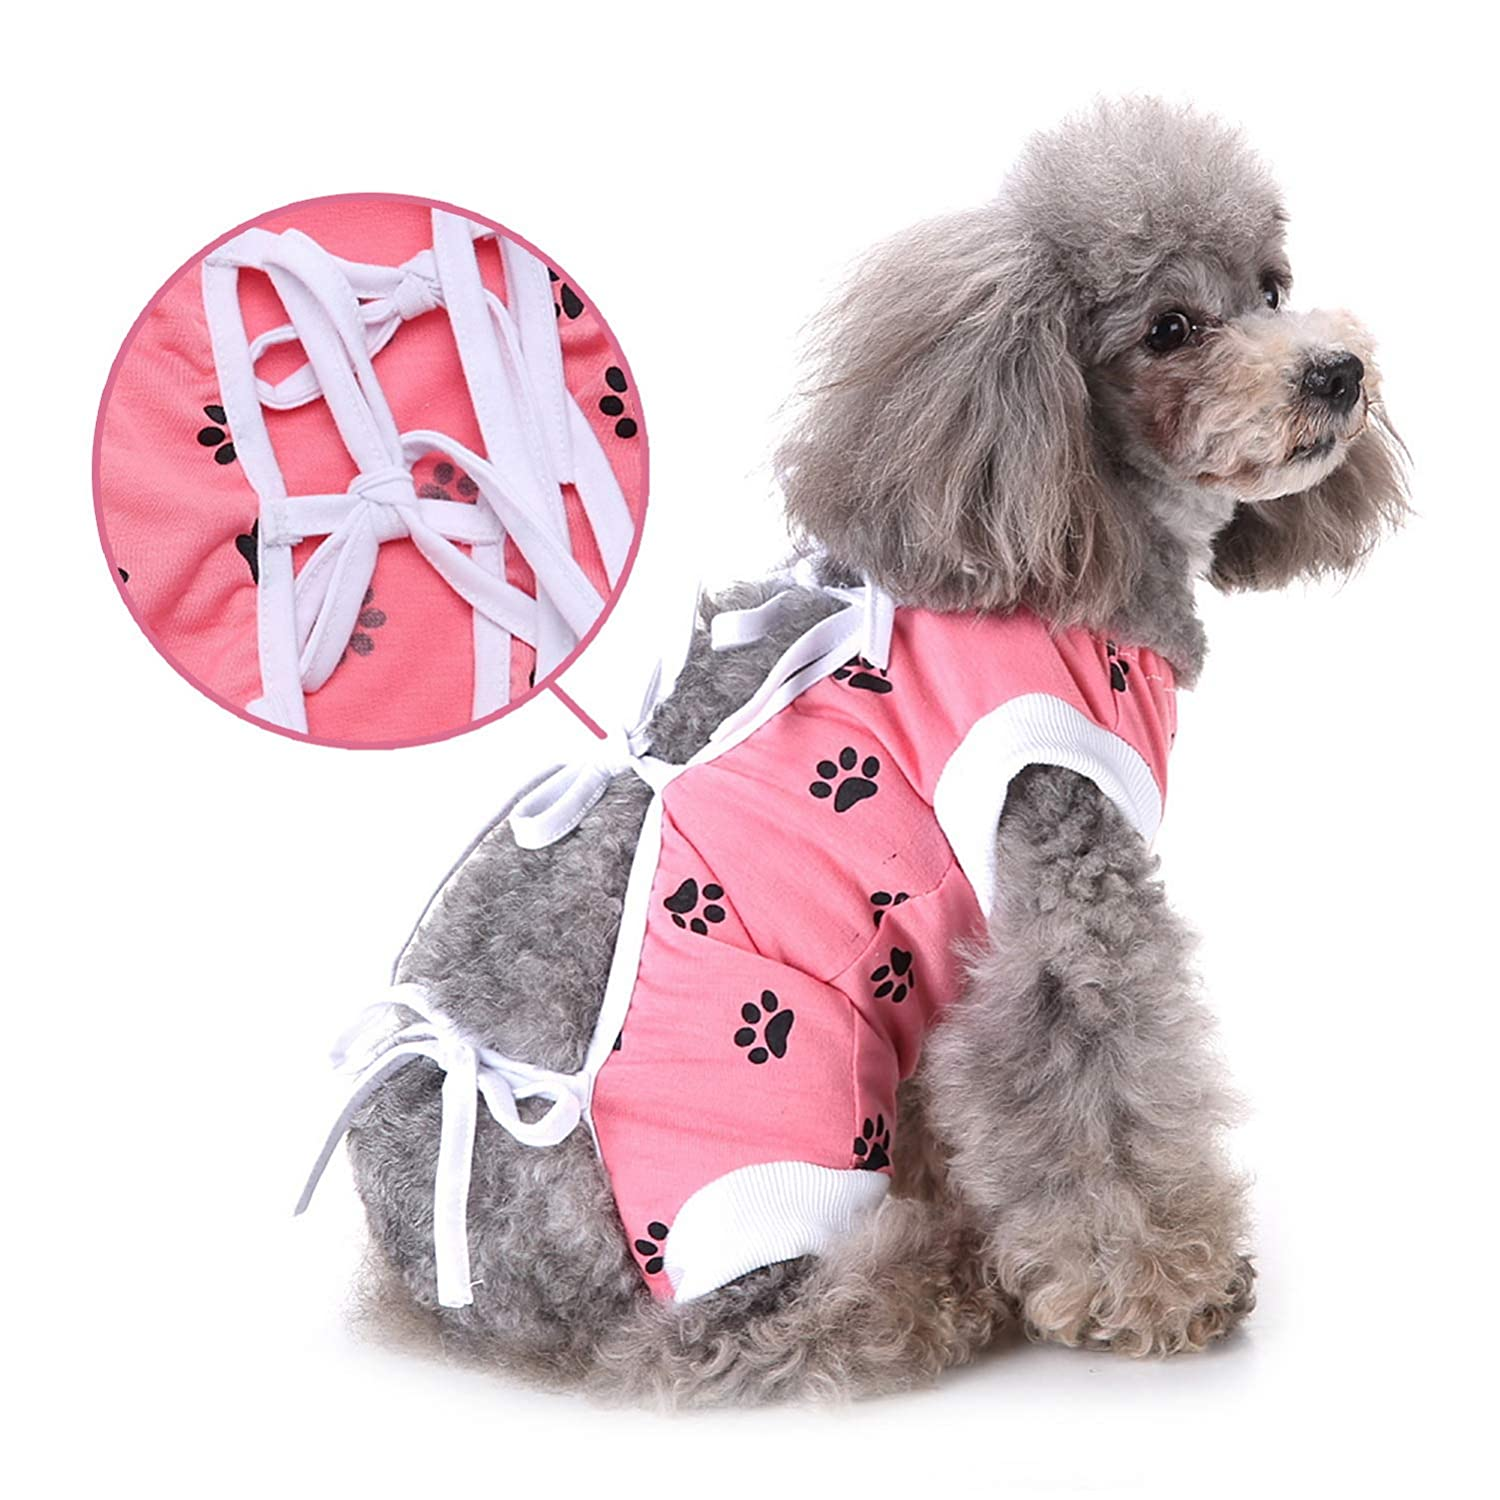 Zunea Small Dog Recovery Suit for After Surgery Female Male Pet Abdominal Wounds Body Wrap Soft Cotton Cone Alternative Injured Care Protection Skin Diseases Prevent Lick Puppy Cats Clothes